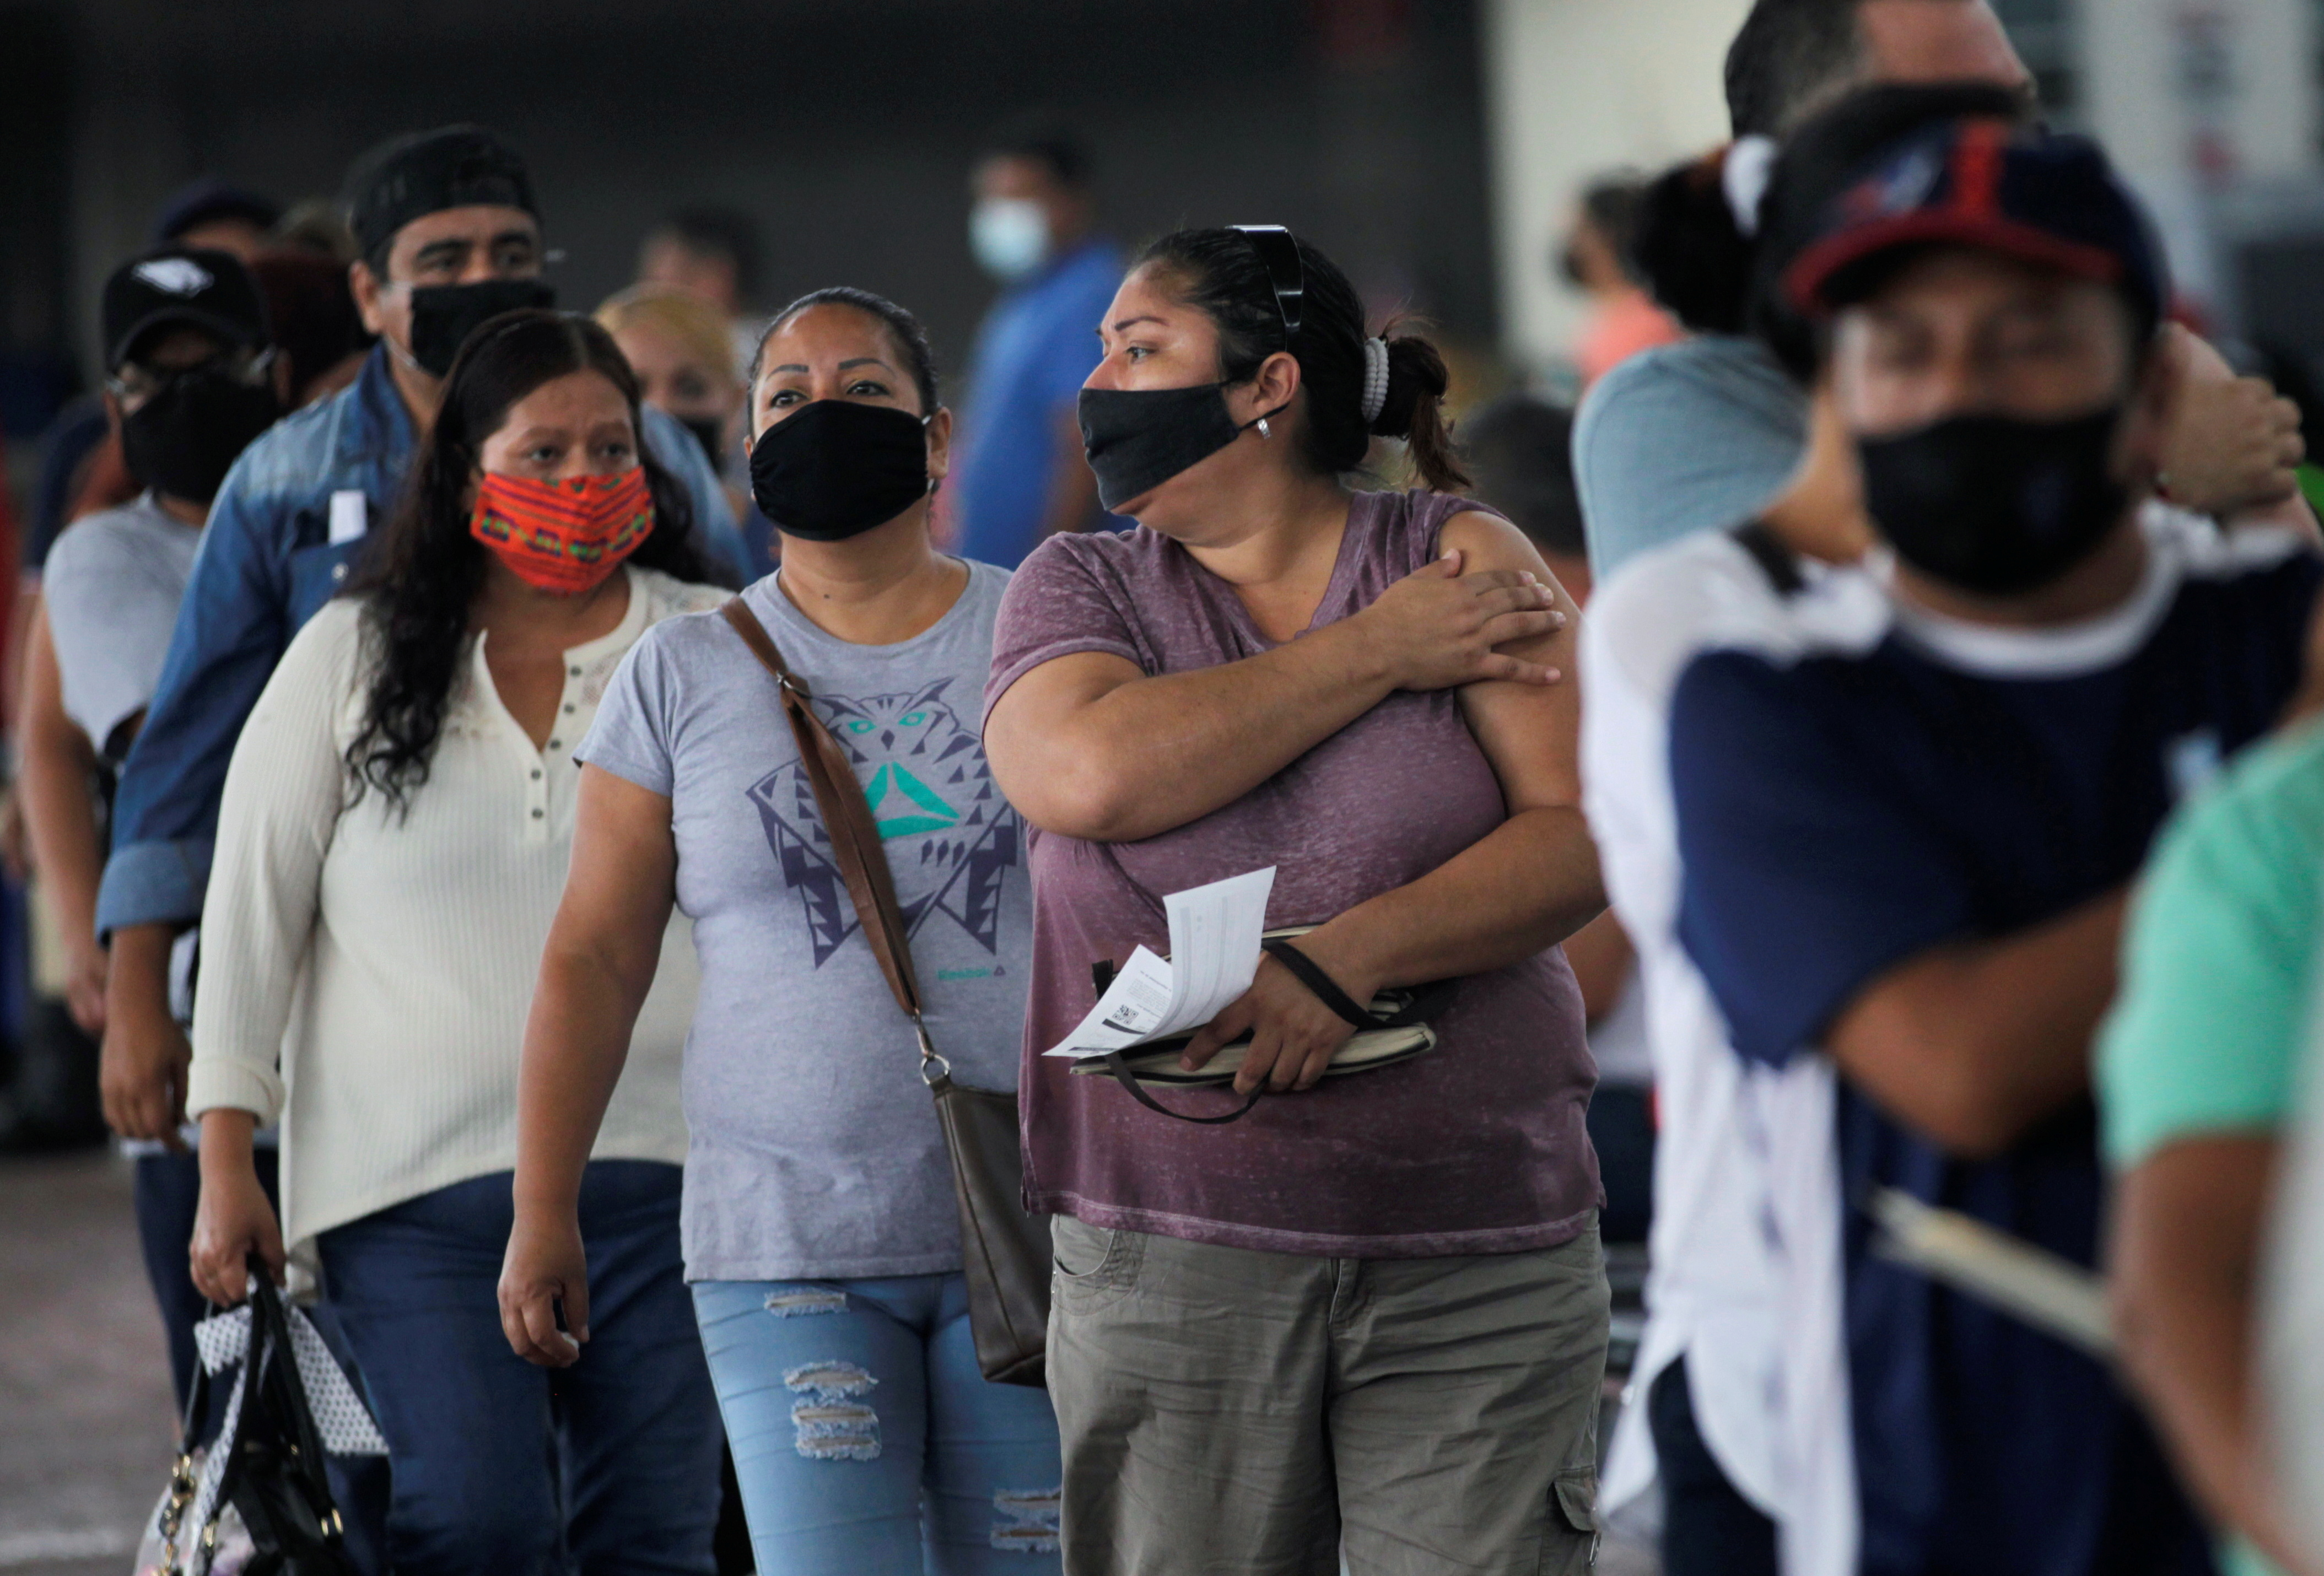 People are seen after receiving  a dose of AstraZeneca coronavirus disease (COVID-19) vaccine, during a mass vaccination in Guadalupe, on the outskirts of Monterrey, Mexico July 22, 2021. REUTERS/Daniel Becerril/File Photo